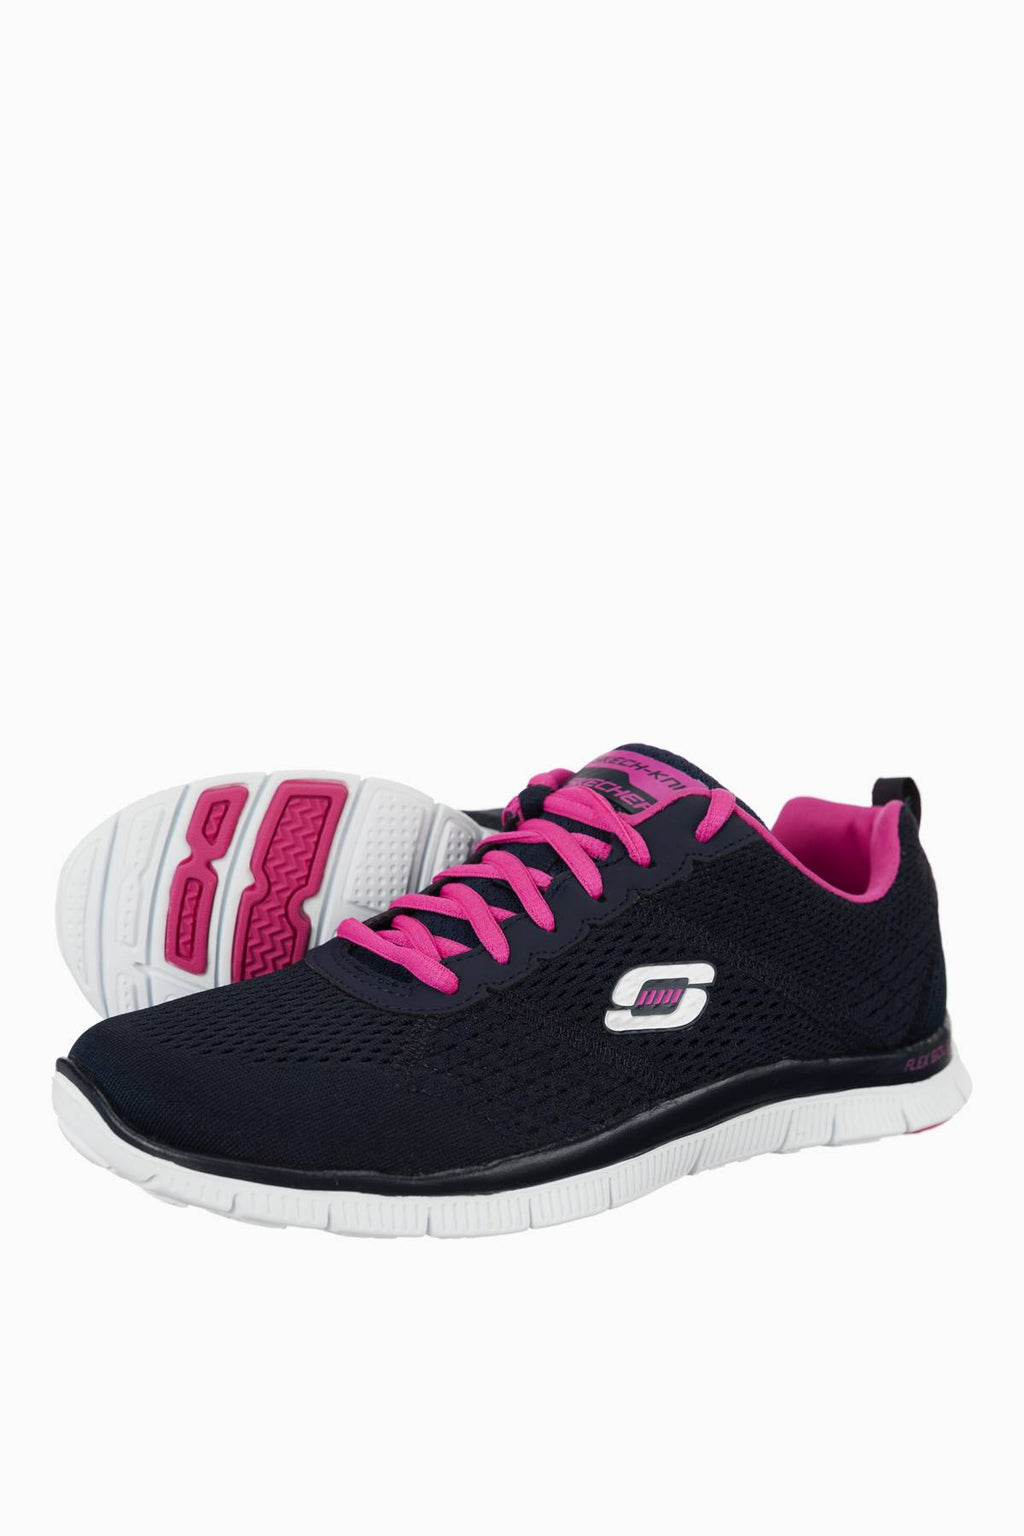 00001 Skechers Trainingschuhe Flex Appeal Obvious Choice